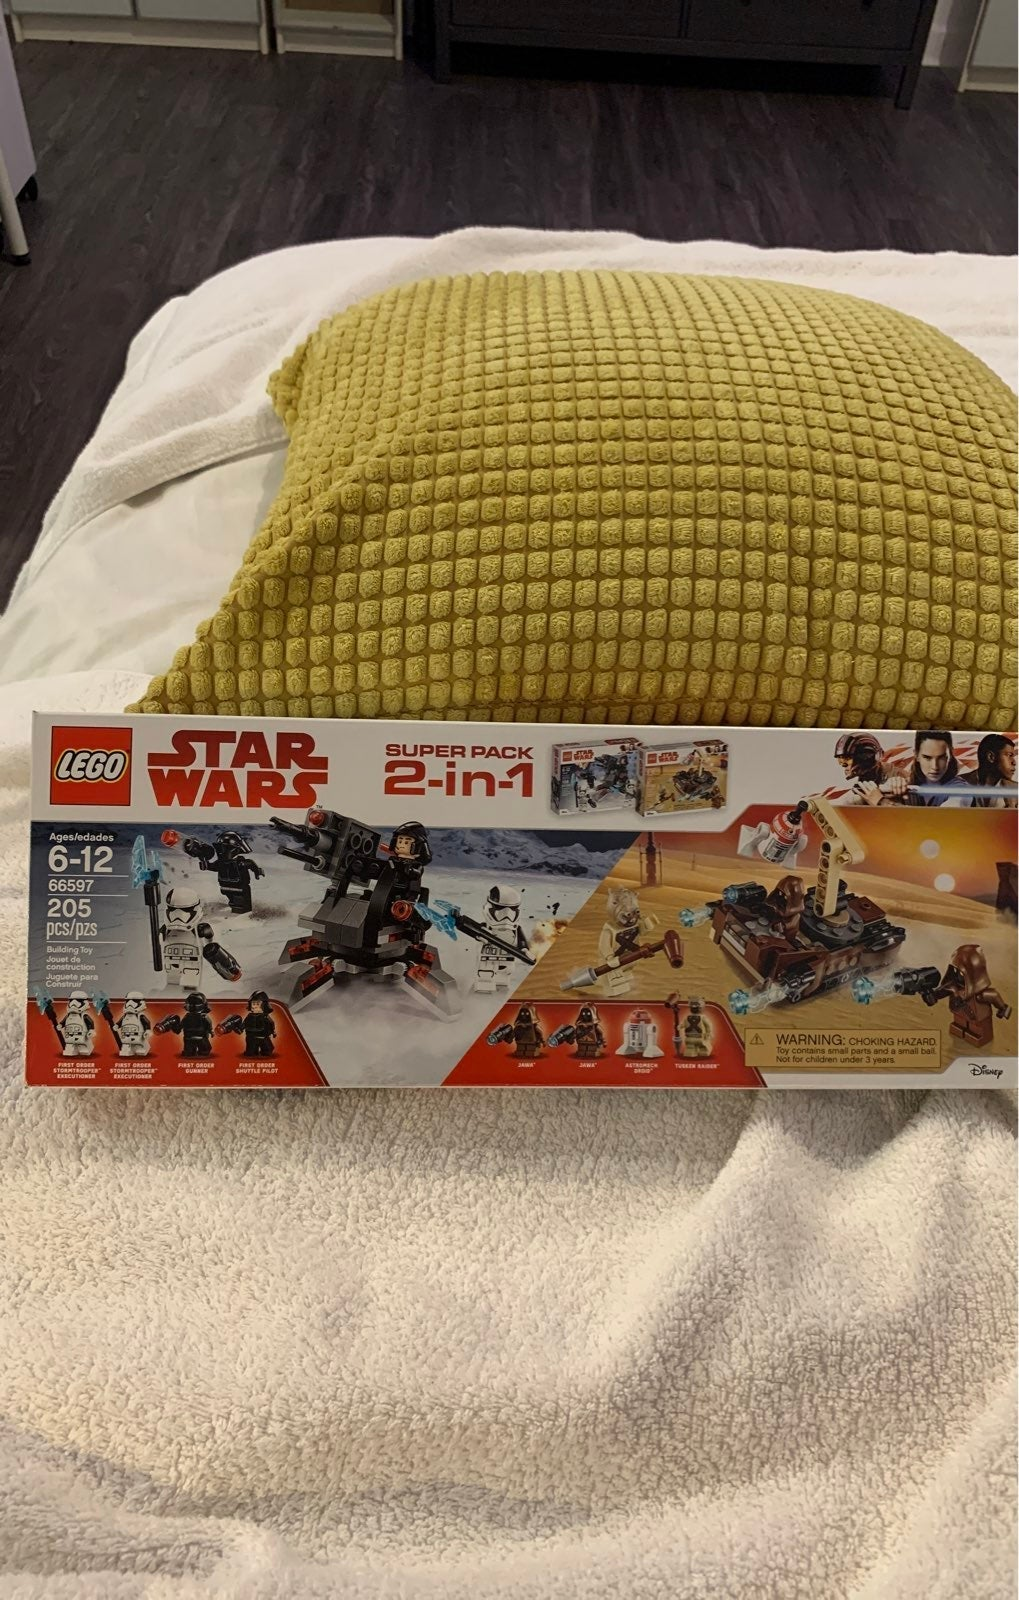 LEGO Star Wars 2-in-1 Super Pack 66597